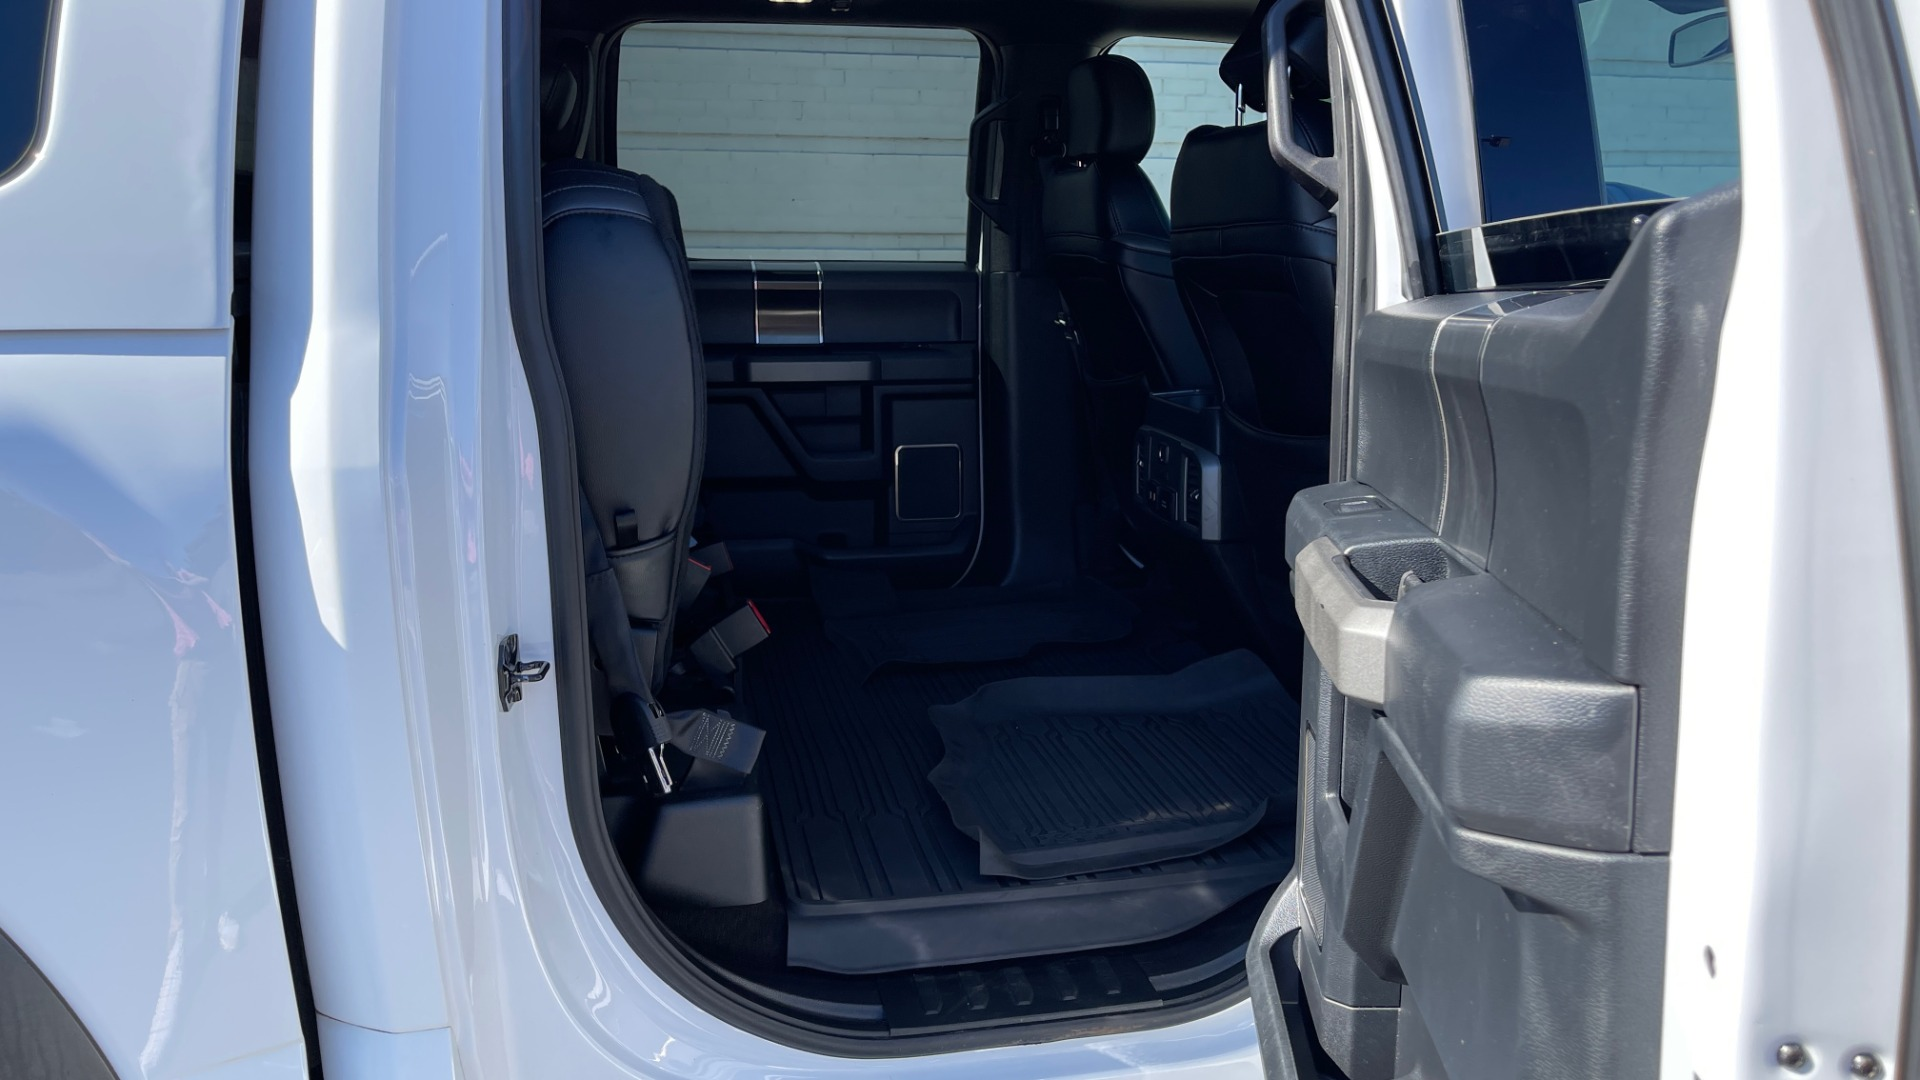 Used 2019 Ford F-150 RAPTOR 4X4 SUPERCREW / NAV / BLIS / B&O SND / REMOTE START / REARVIEW for sale $65,999 at Formula Imports in Charlotte NC 28227 65